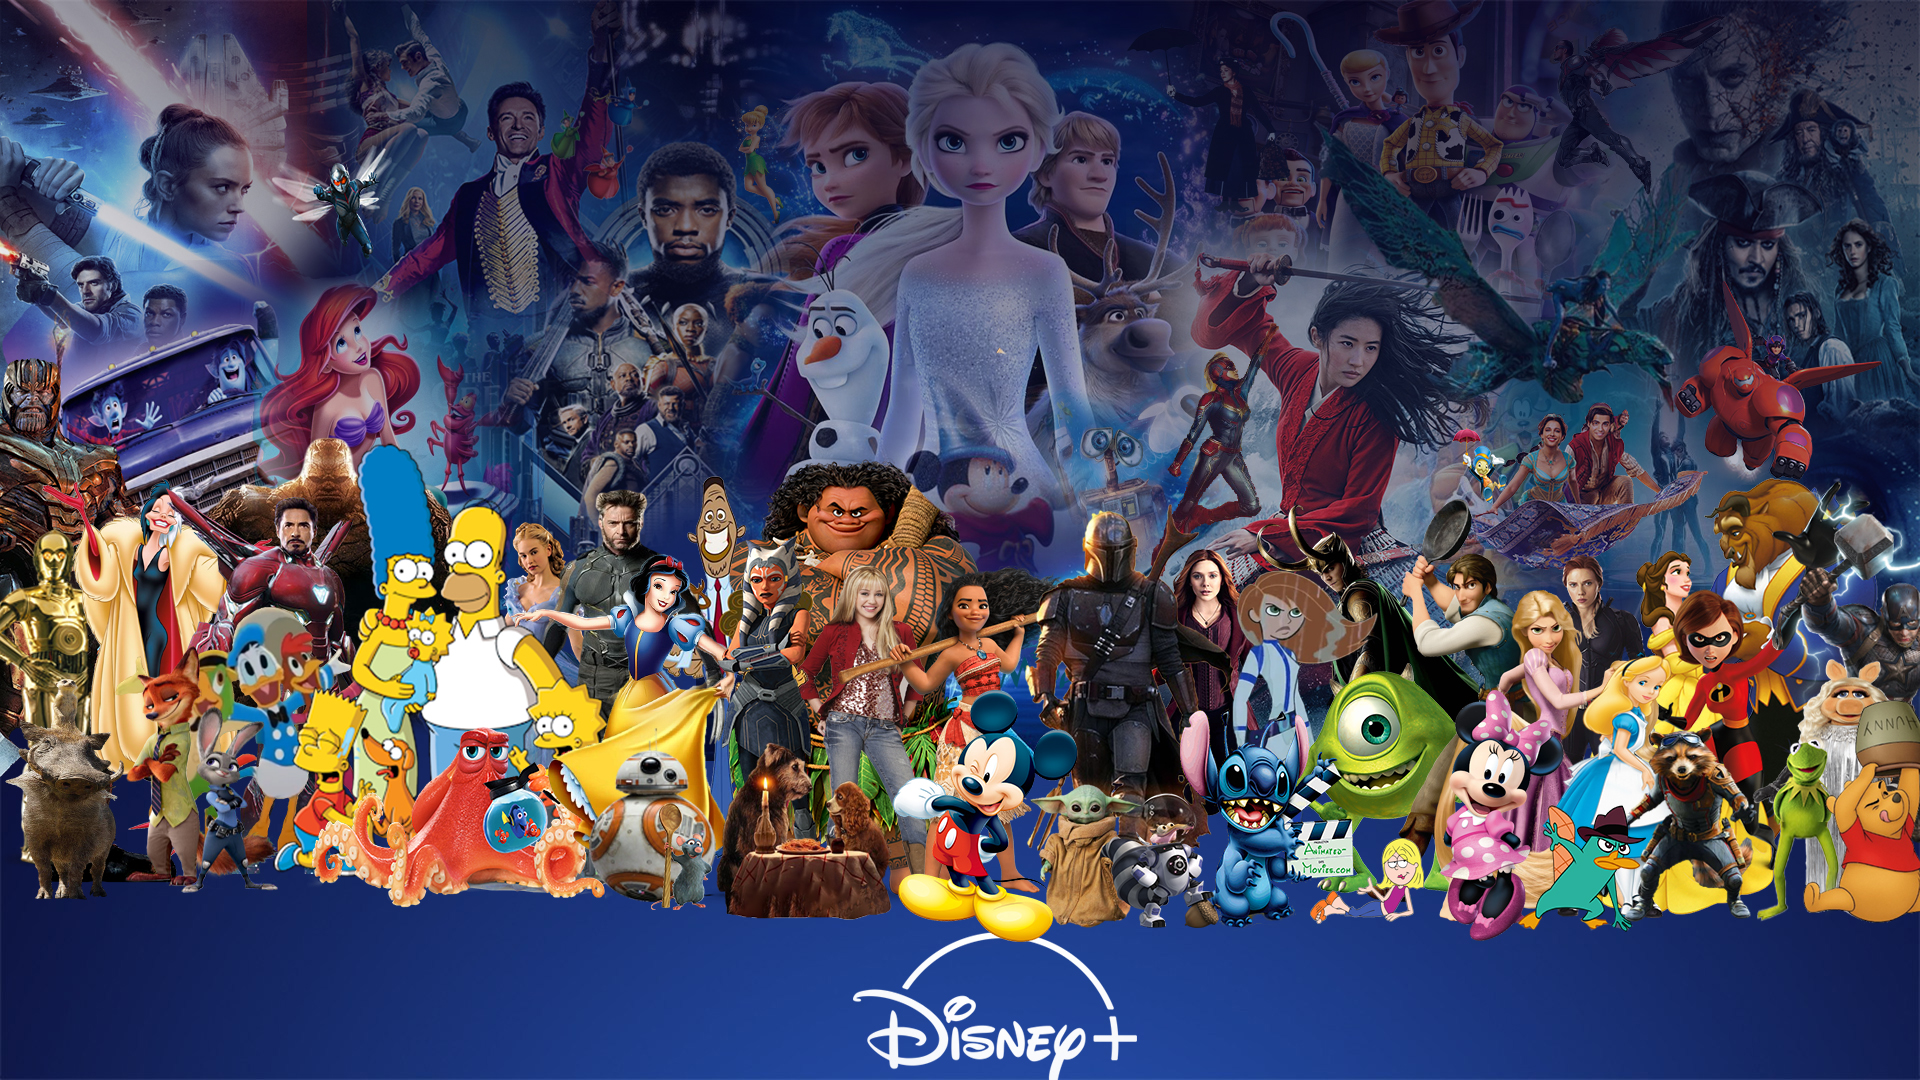 Disney Plus Wallpaper Version 2 By Thekingblader995 On Deviantart